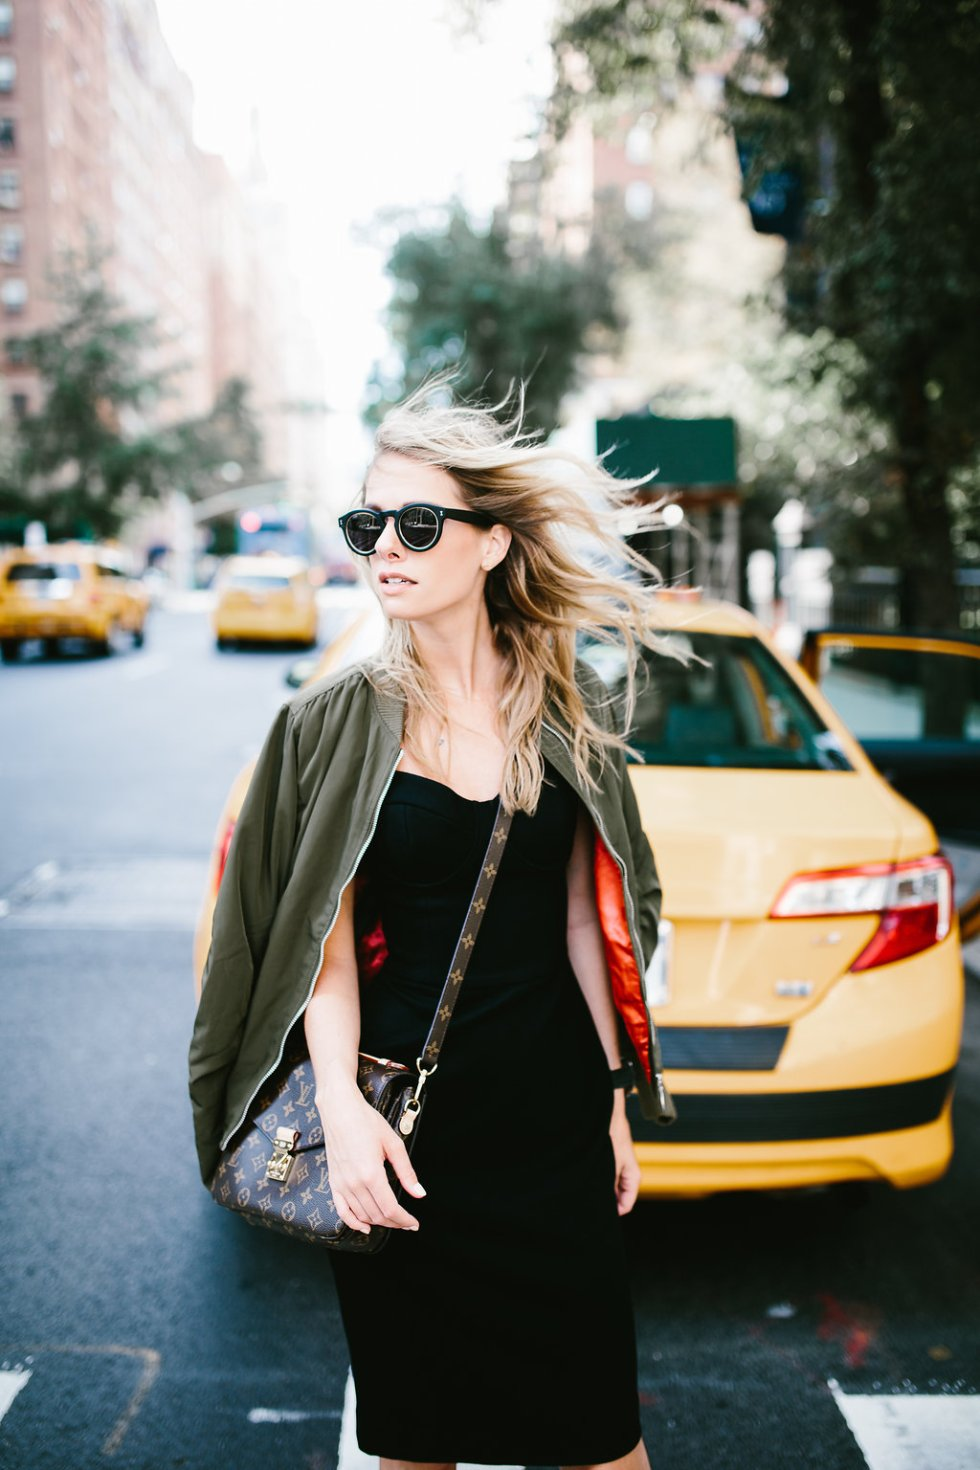 NYC Street Style on PaulaRallis.com